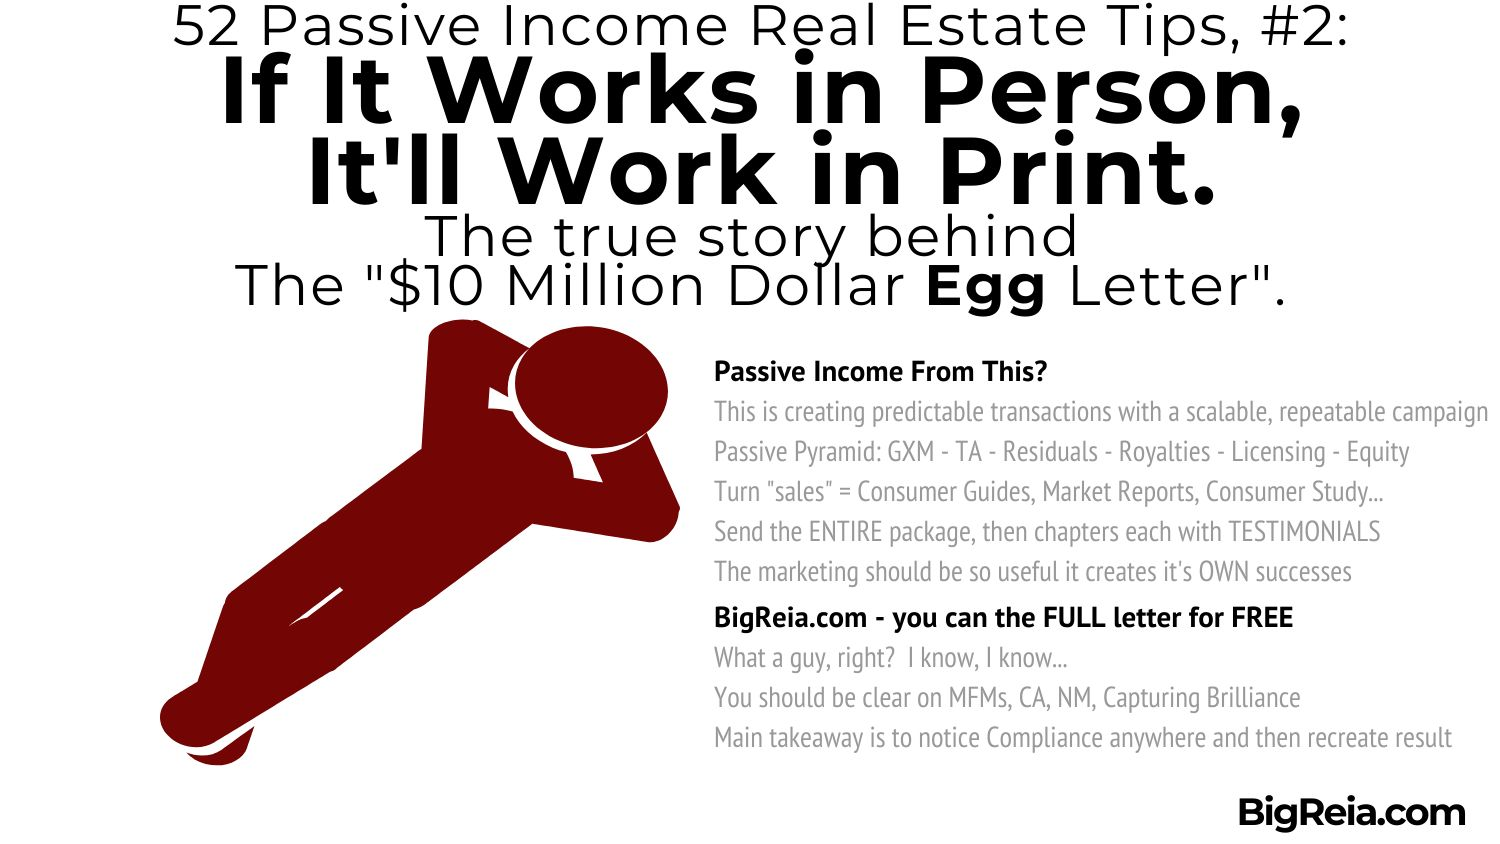 How to use this 10 million letter to create passive income - BigReia.com